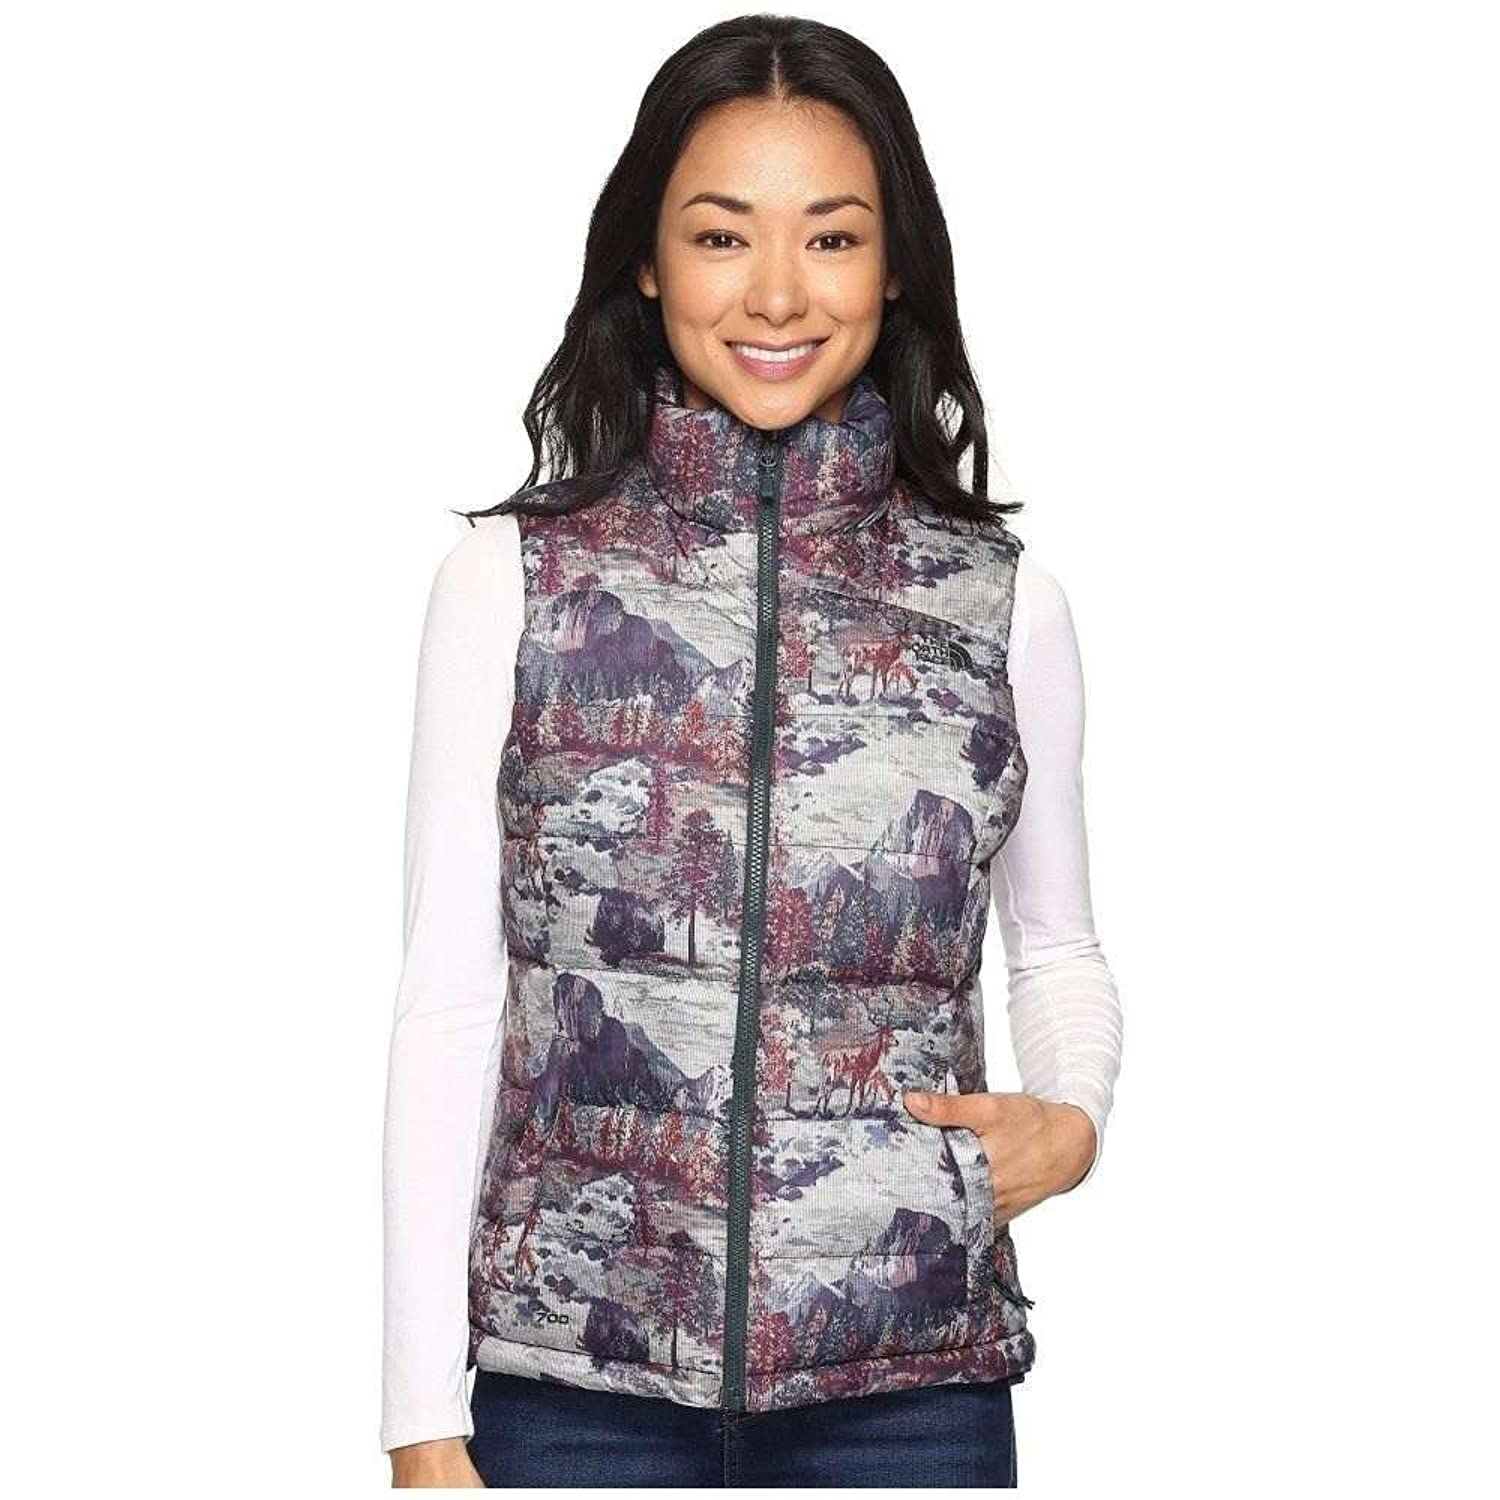 ザ・ノース・フェイス(THE NORTH FACE)Nuptse Vest2